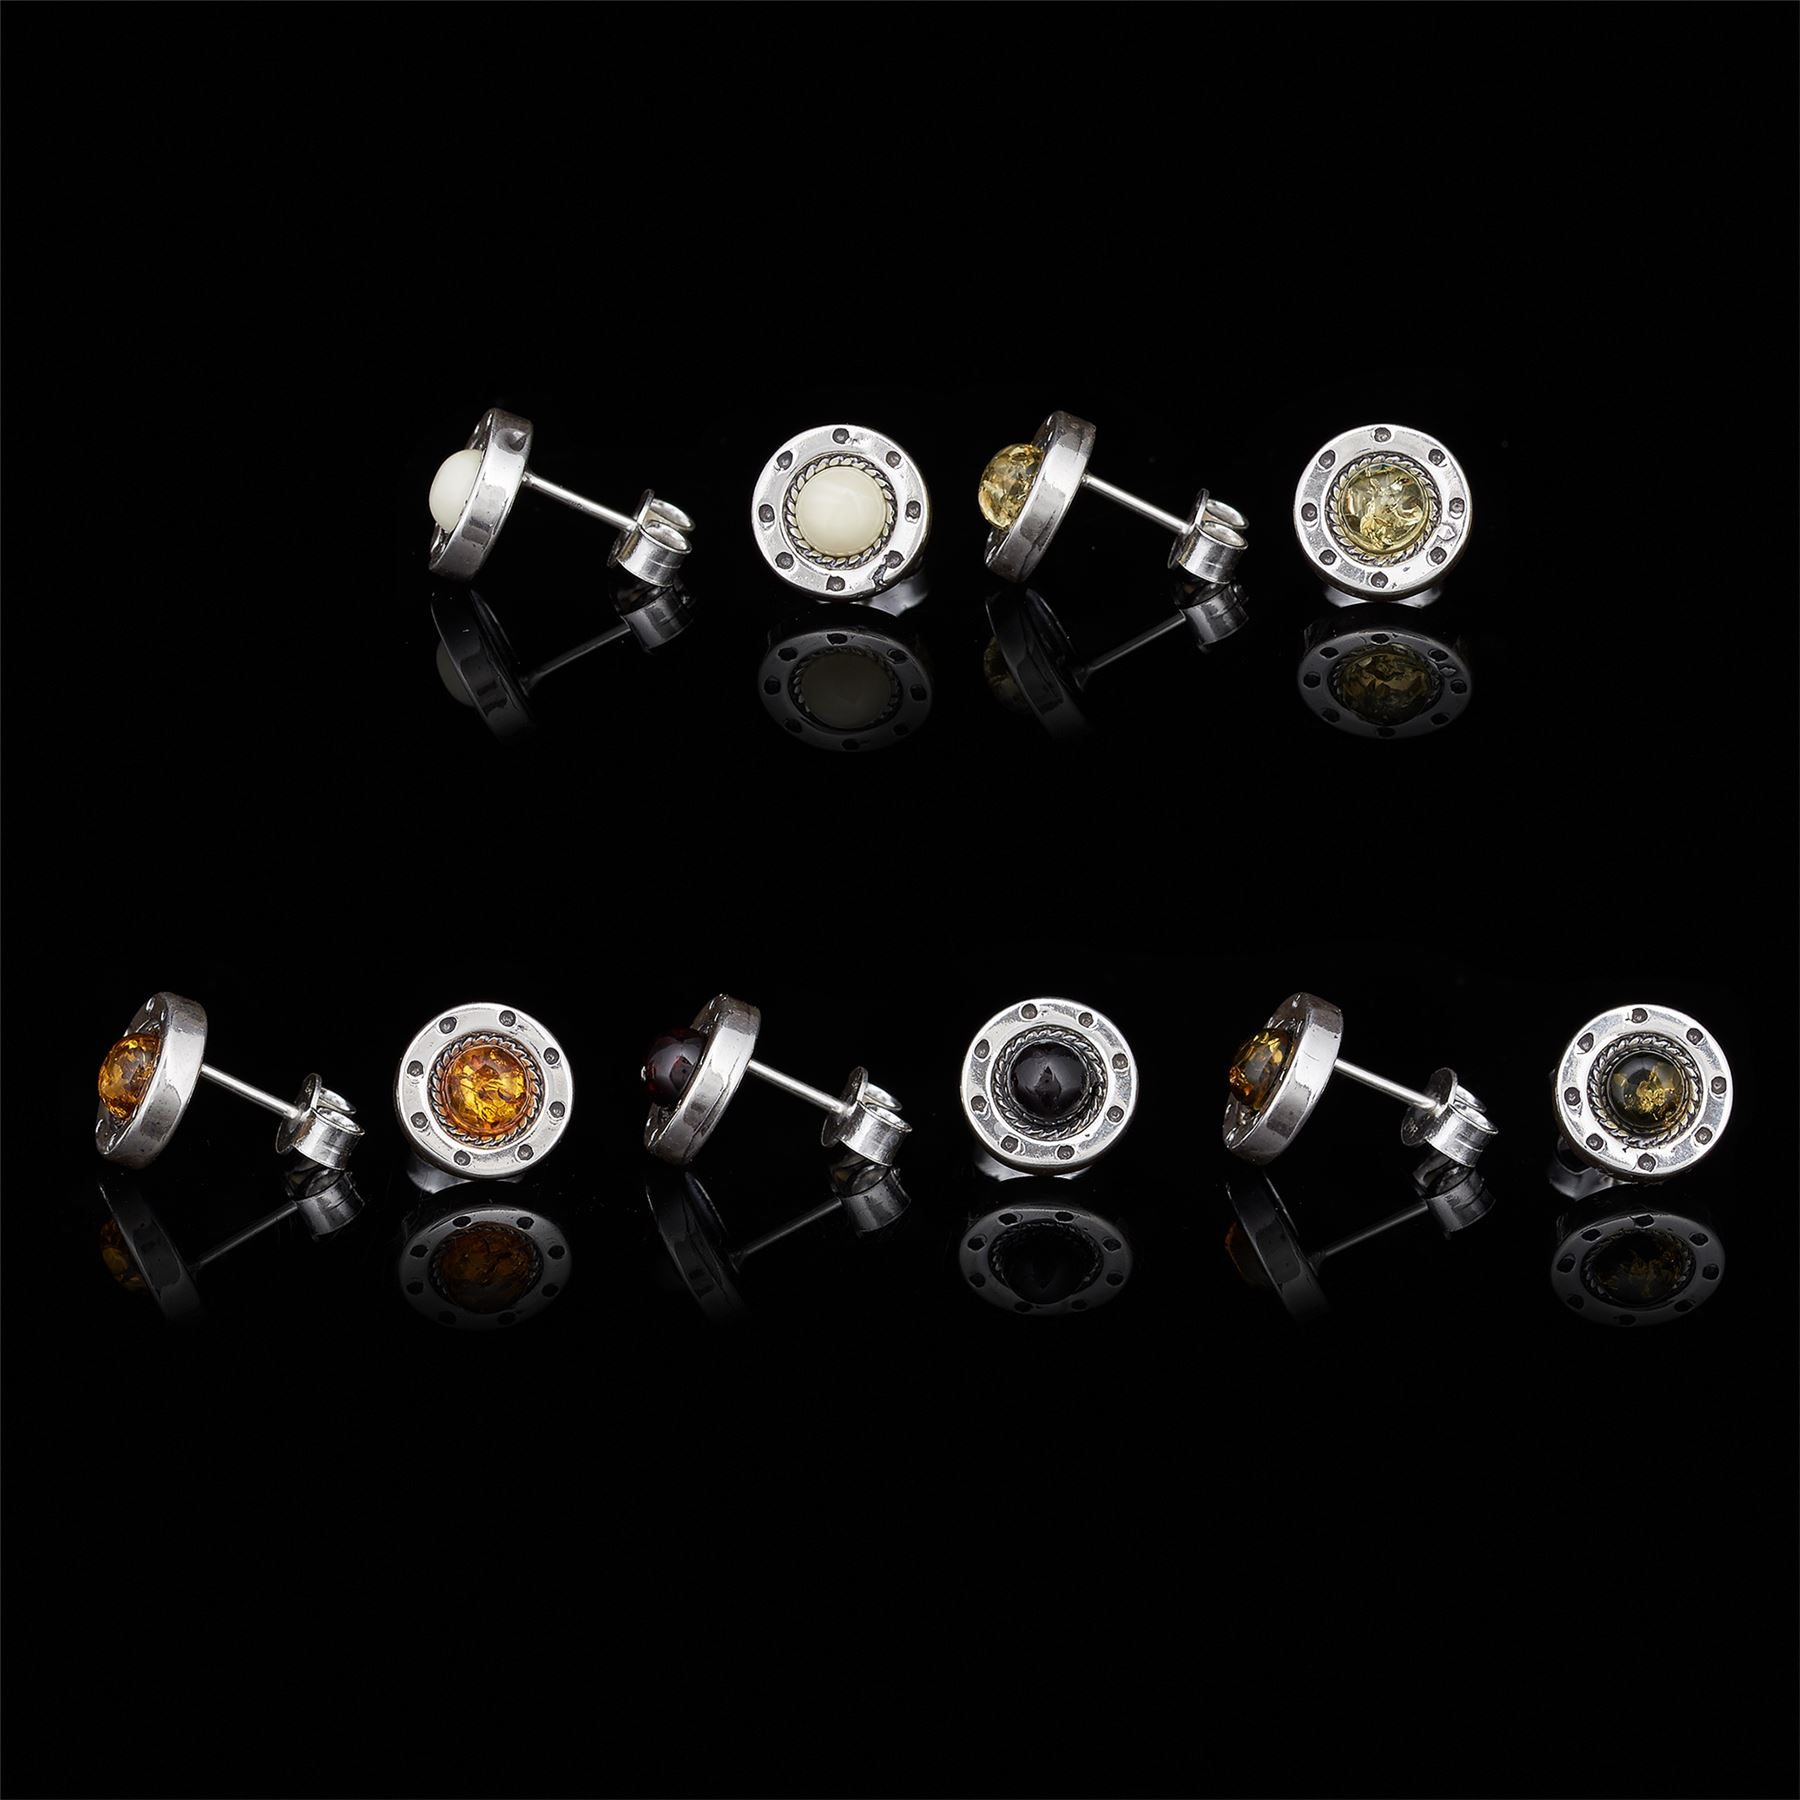 Amberta-Genuine-925-Sterling-Silver-Earrings-with-Natural-Baltic-Amber-Gemstone thumbnail 53